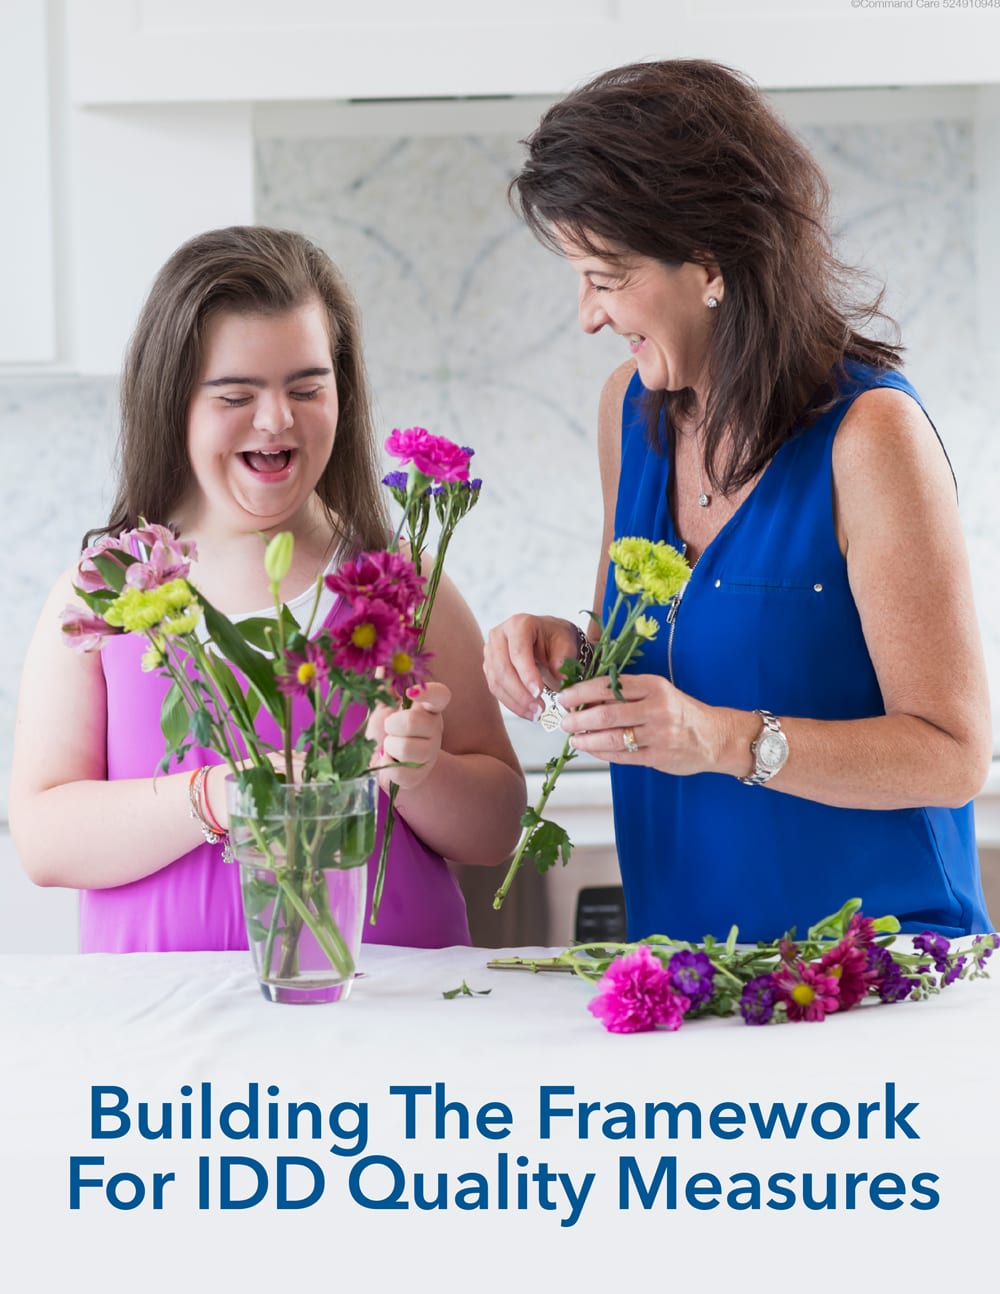 'Building The Framework for IDD Quality Measures Guide